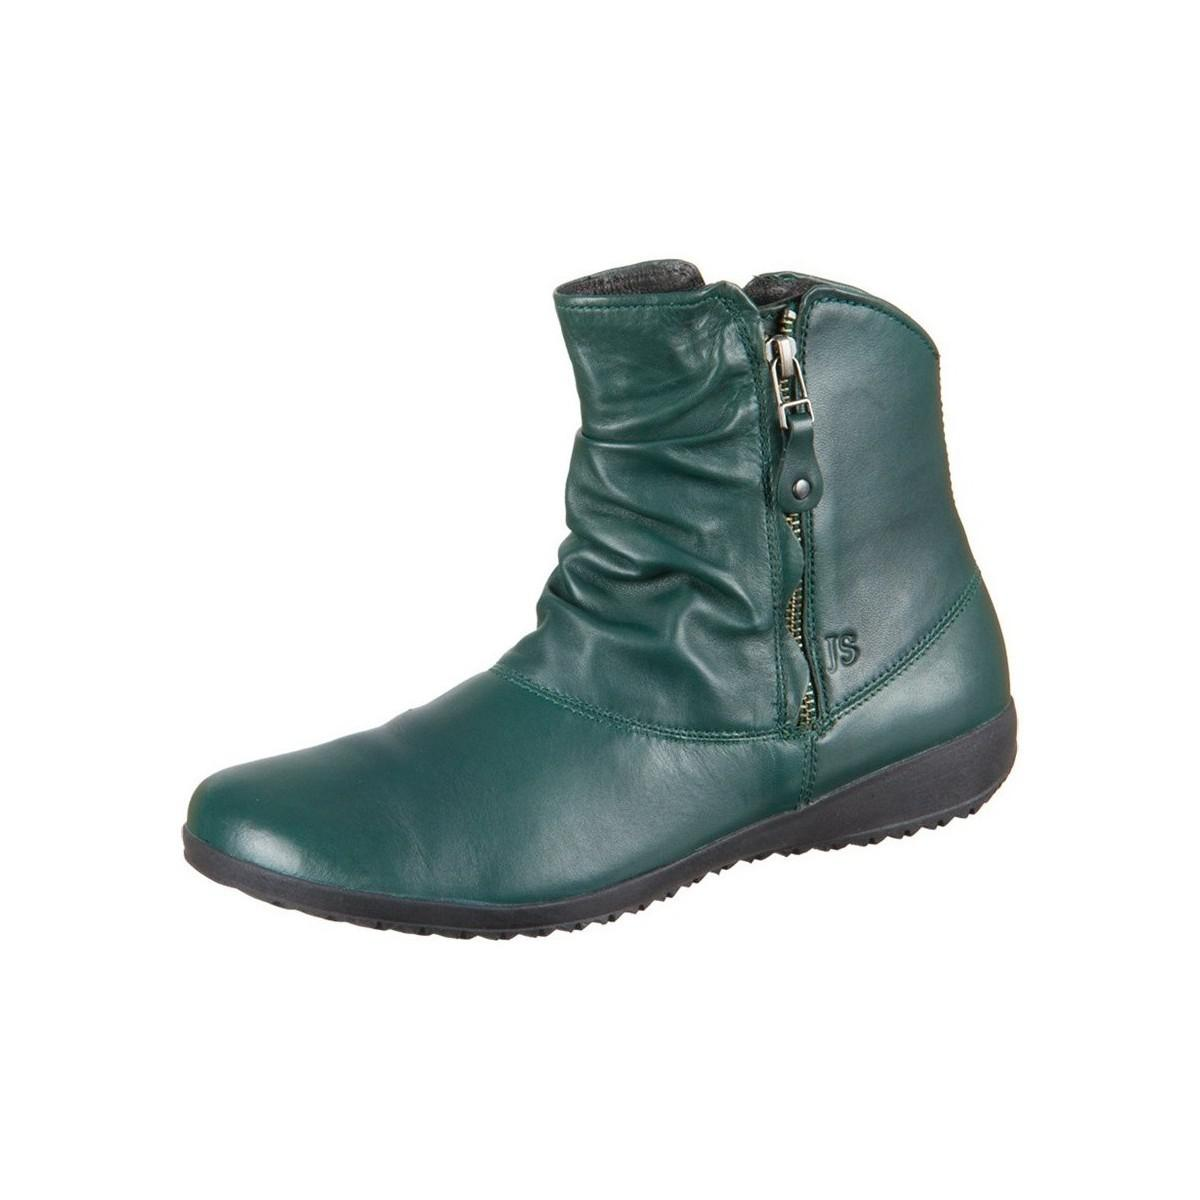 e0be98443999 Josef Seibel Naly 24 Women s Mid Boots In Green in Green - Lyst